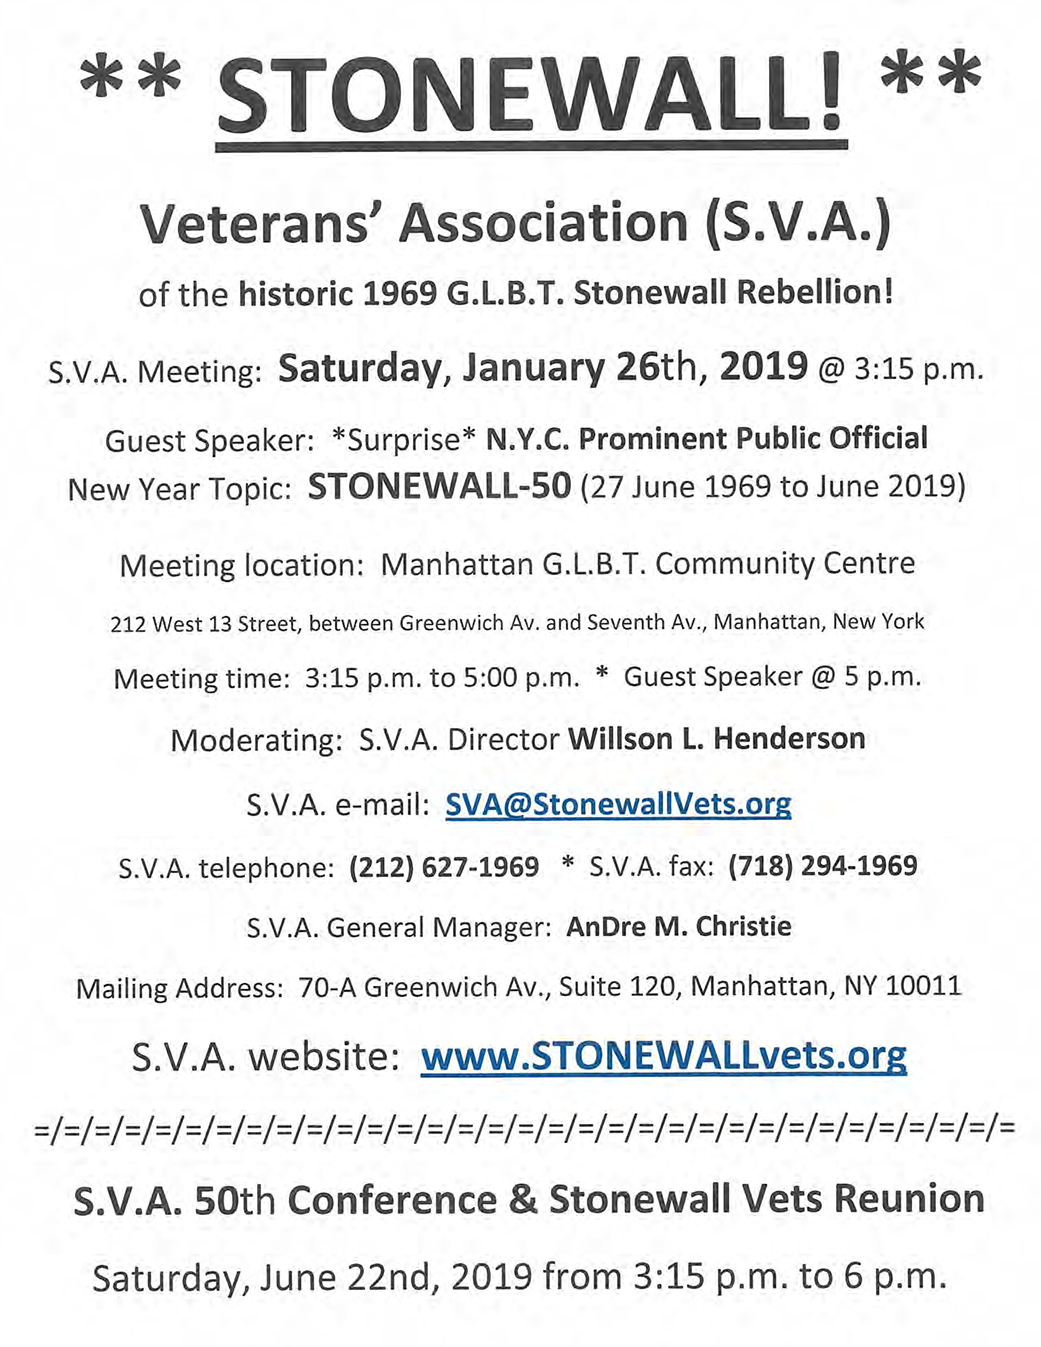 S.V.A. Monthly Meeting - Saturday 26, 2019